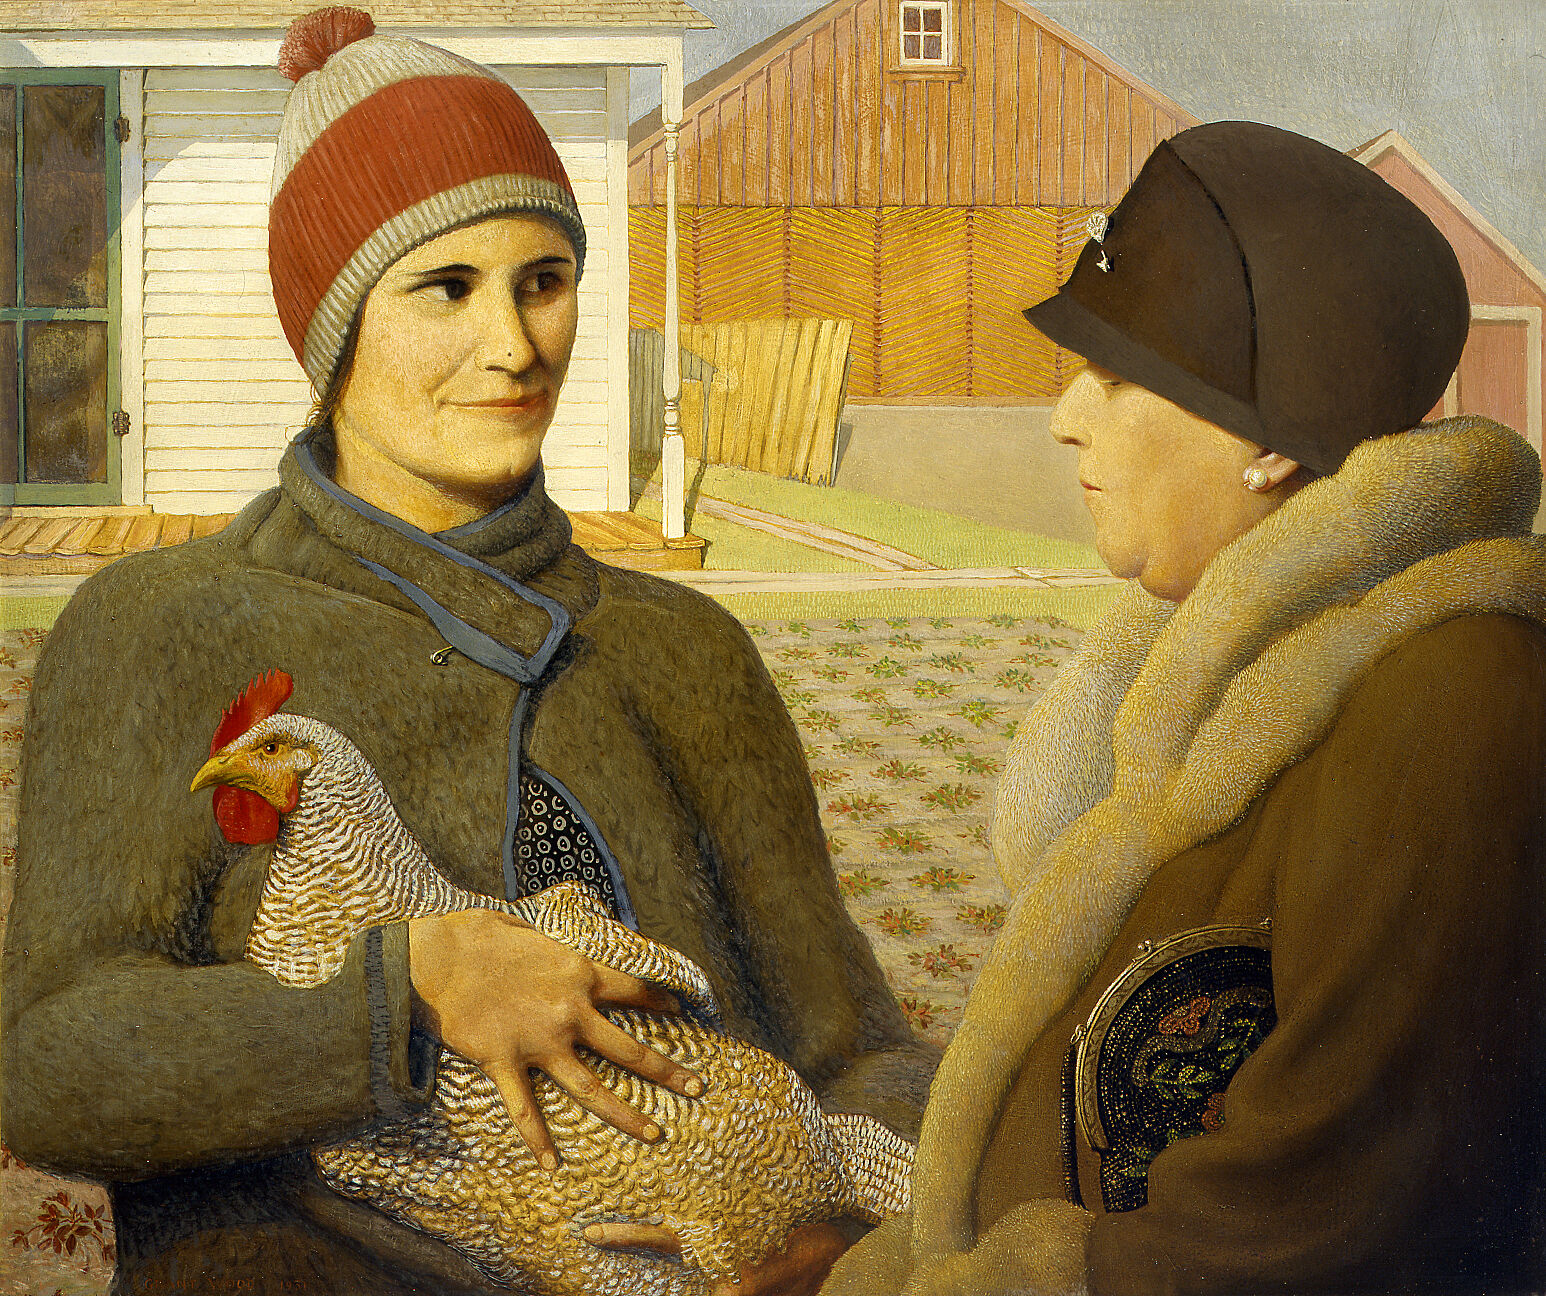 Painting of woman holding a rooster, speaking with another woman holding a purse.